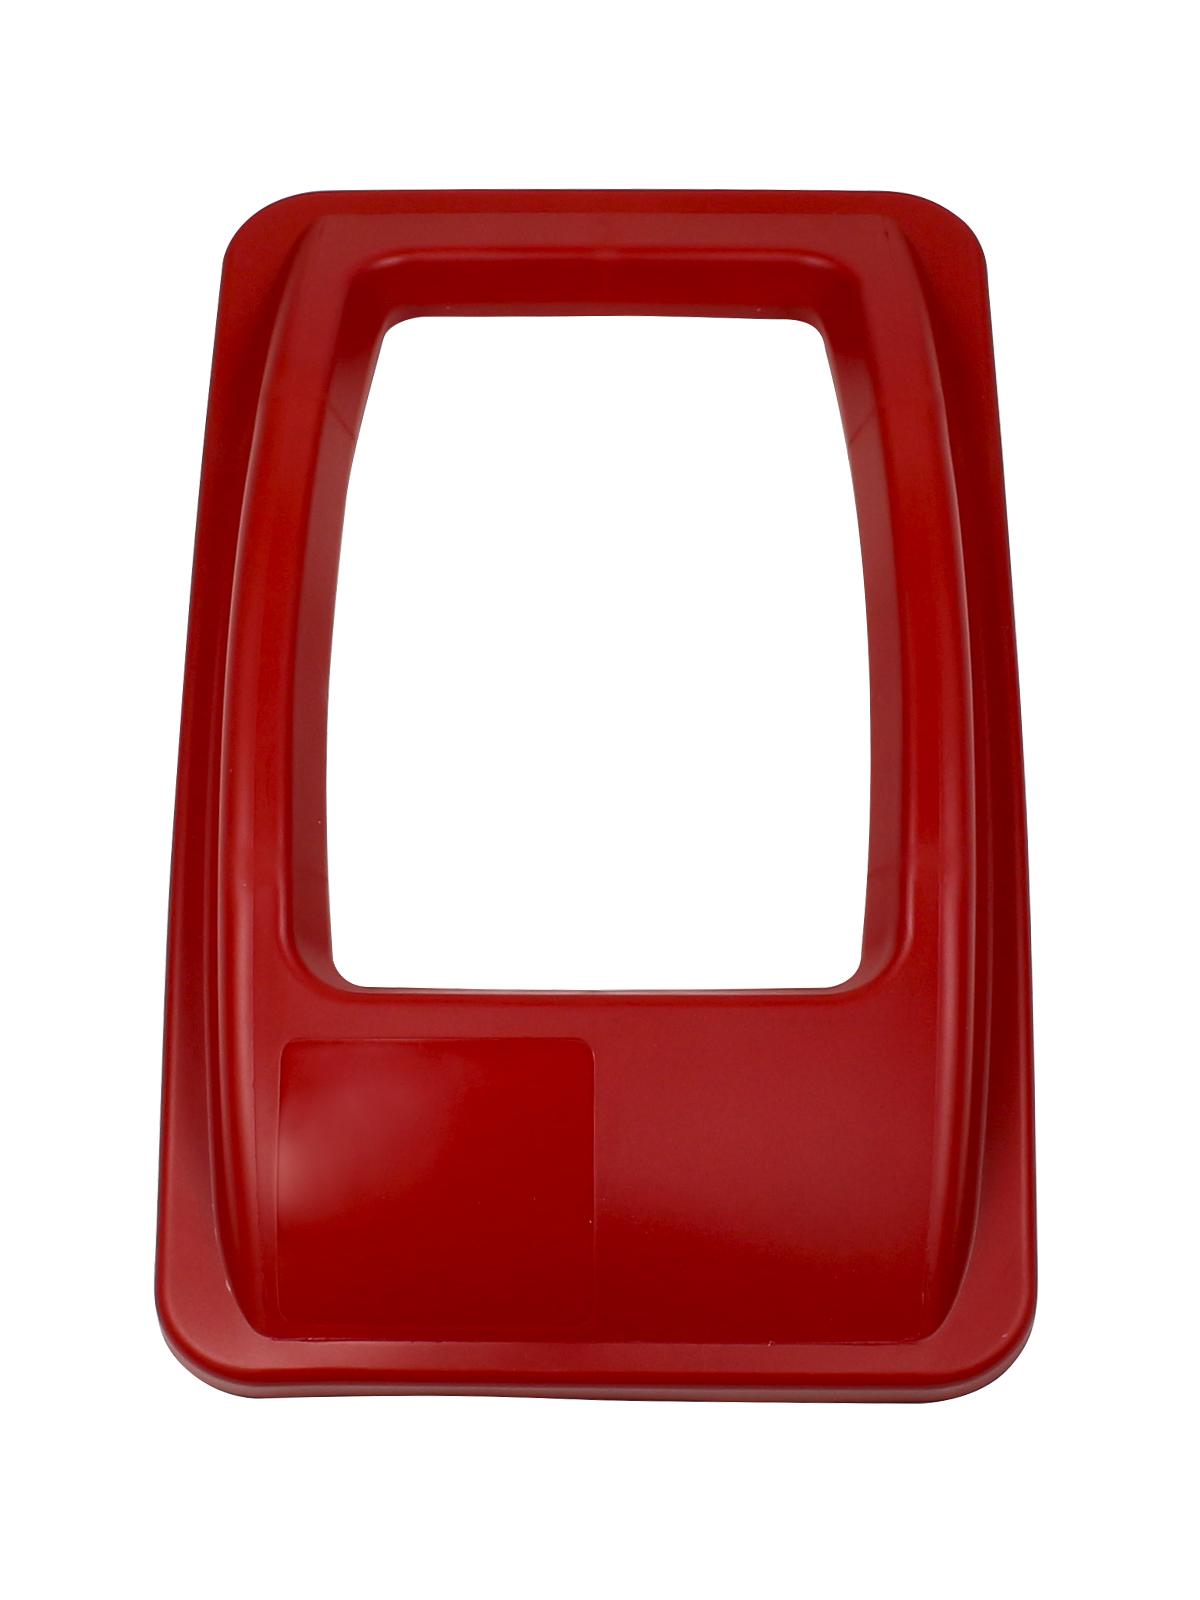 WASTE WATCHER - Lid - Full - Red